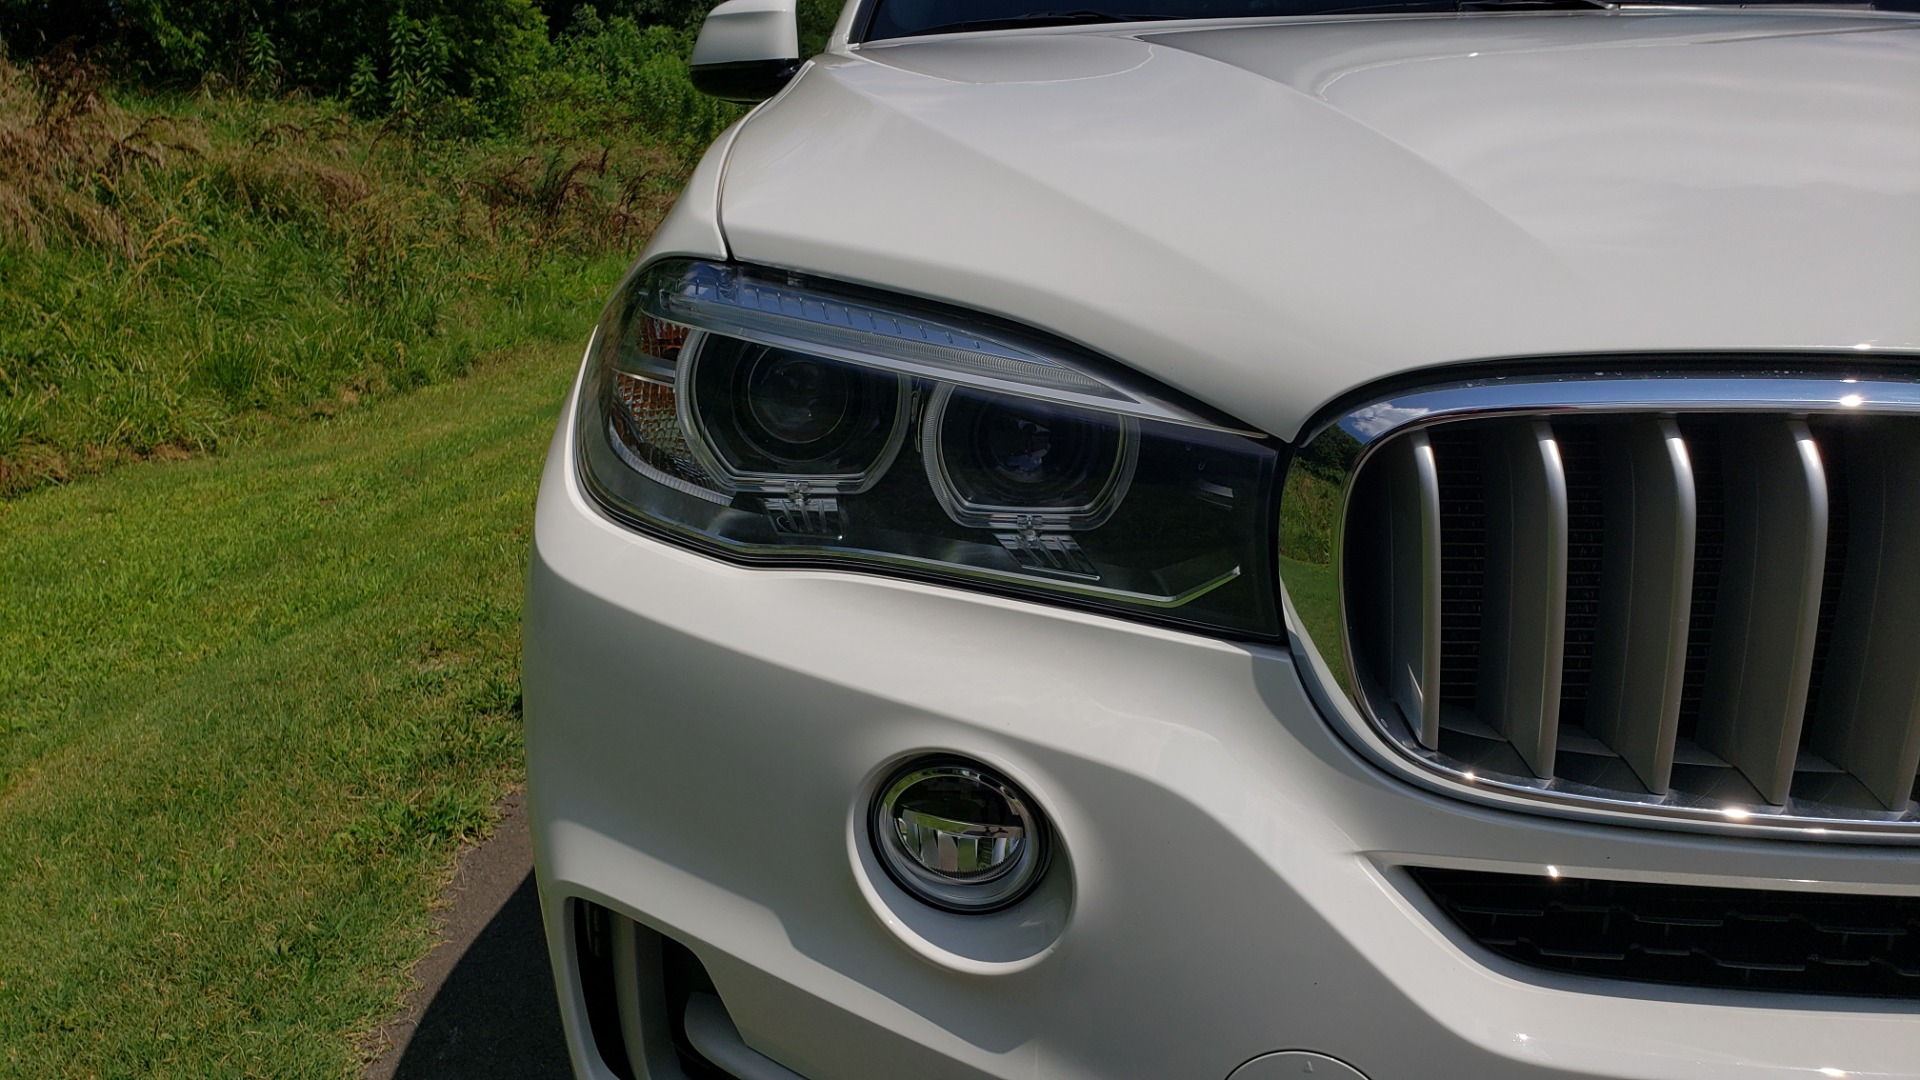 Used 2017 BMW X5 XDRIVE35I / NAV / SUNROOF / RUNNING BOARDS / REARVIEW for sale $33,995 at Formula Imports in Charlotte NC 28227 7